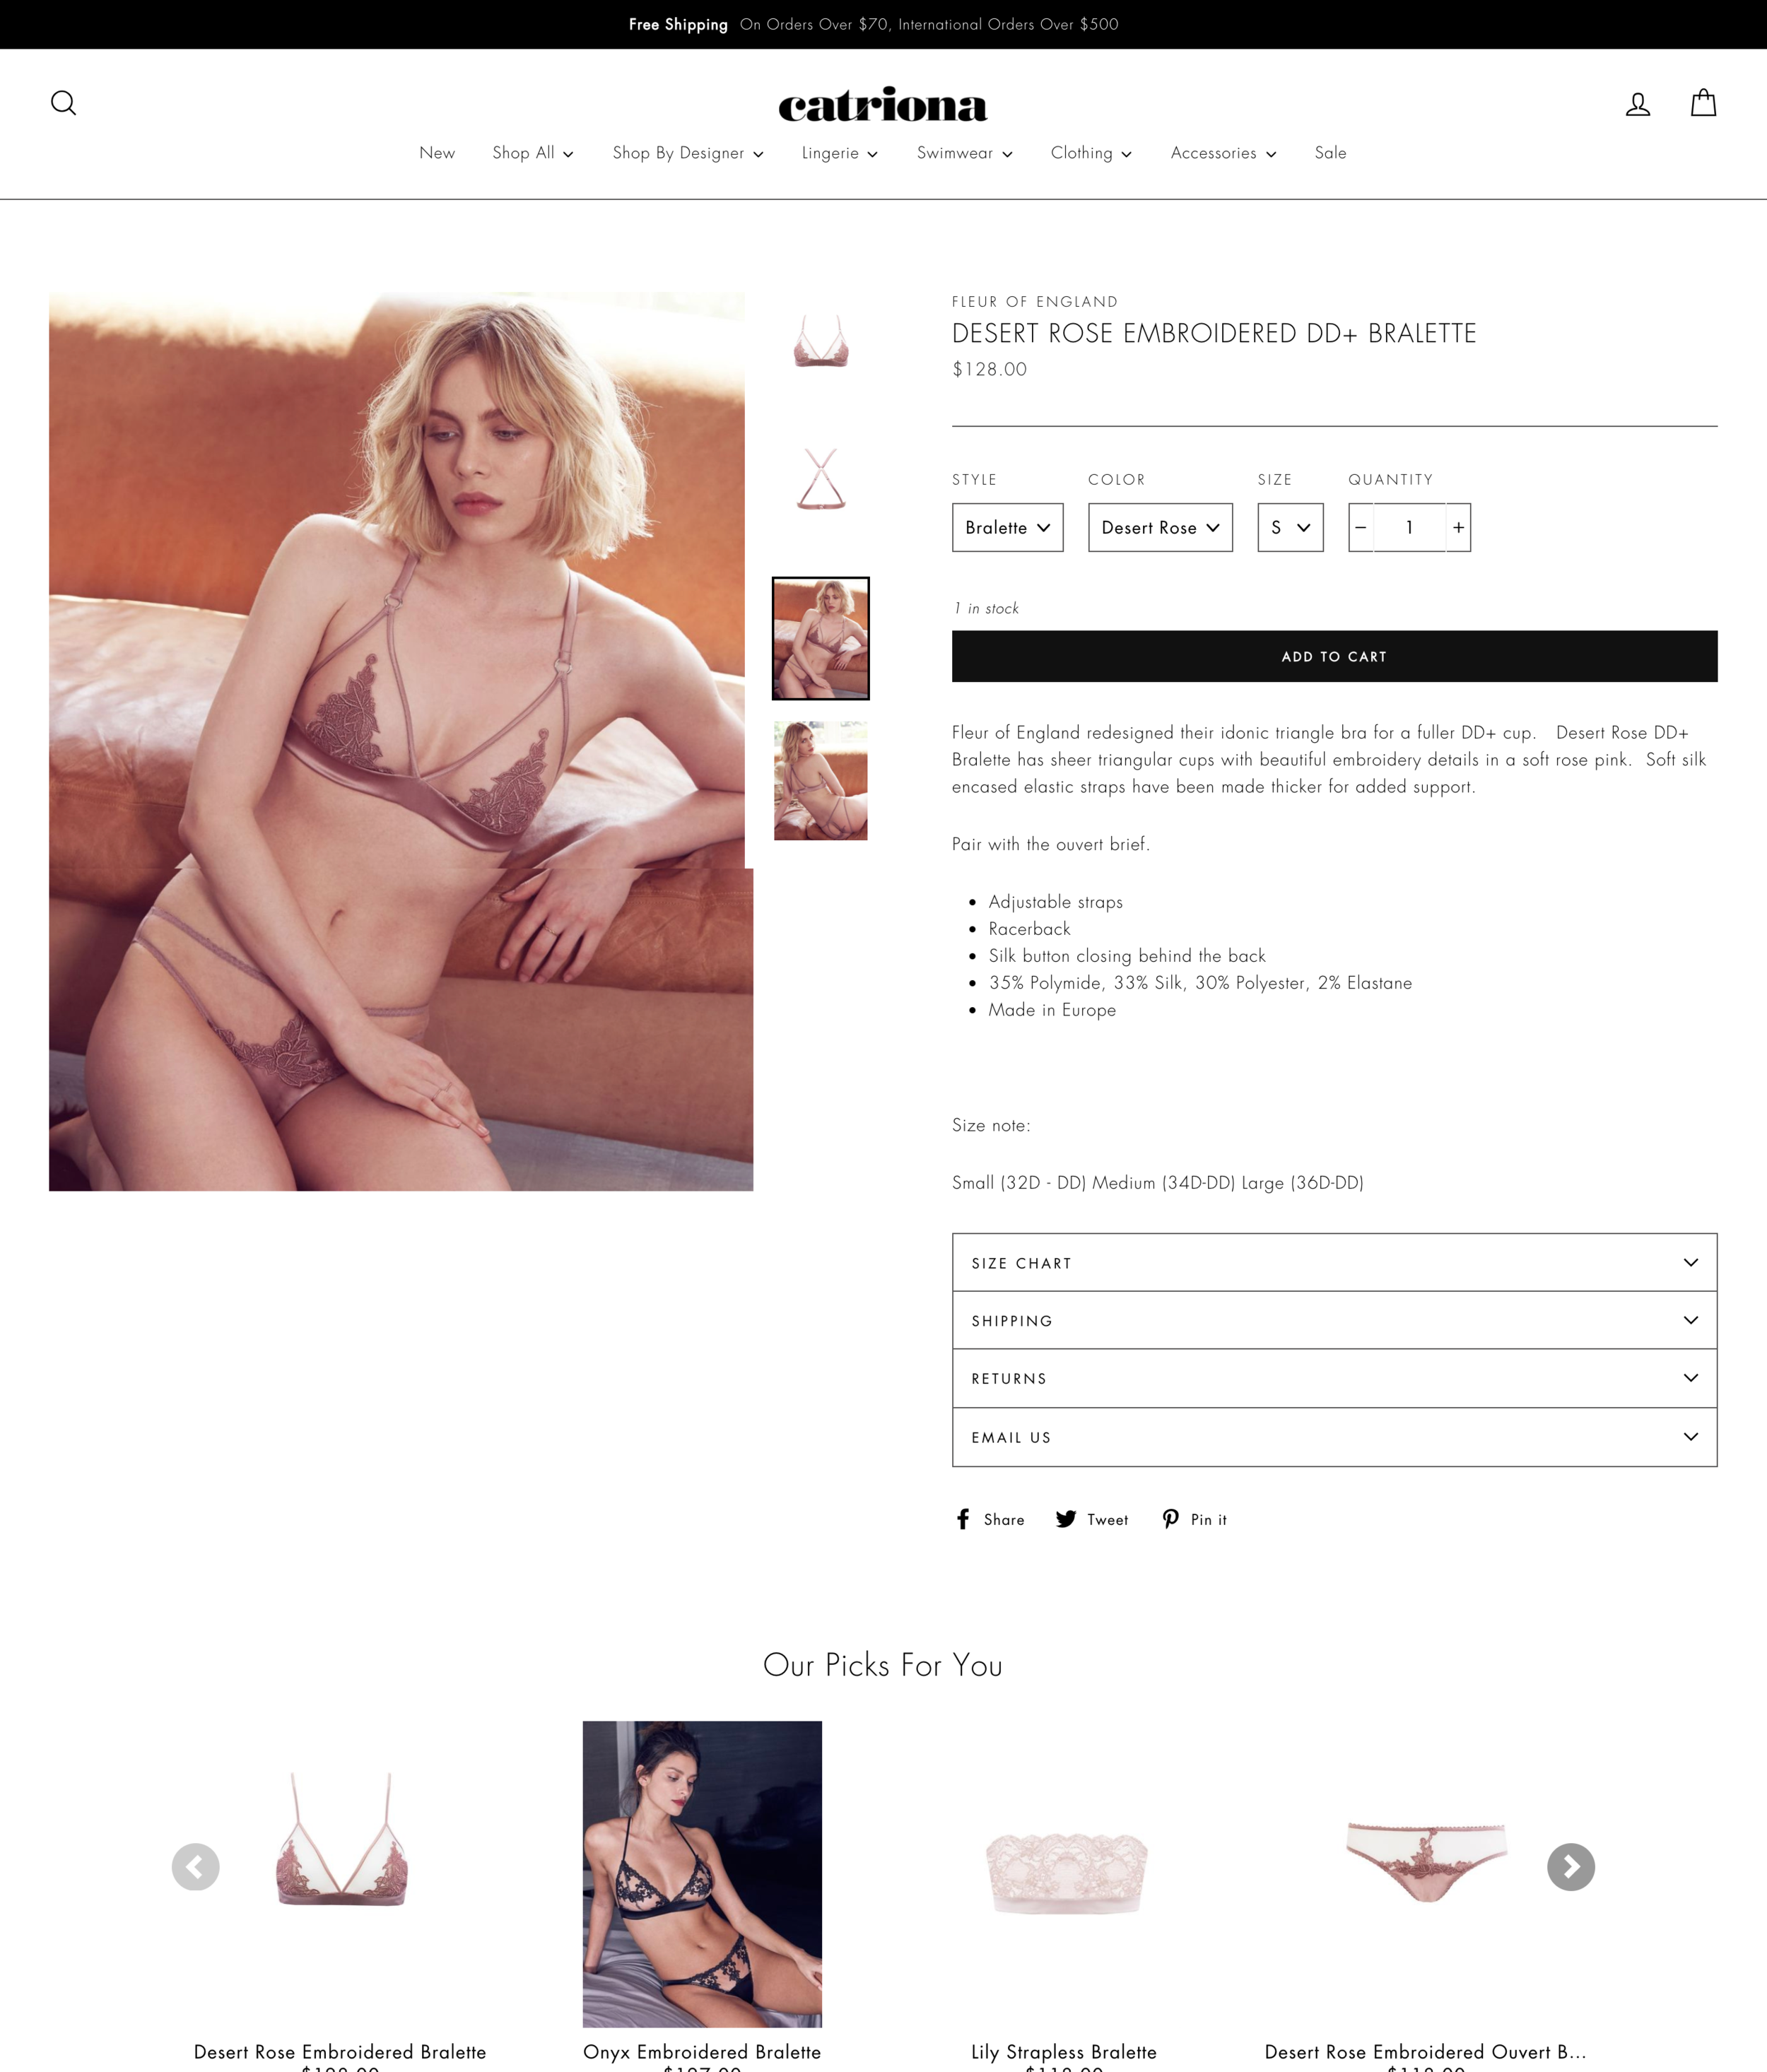 screencapture-catriona-products-fleurofengland-desert-rose-embroidered-dd-bralette-2019-04-25-15_25_11.png